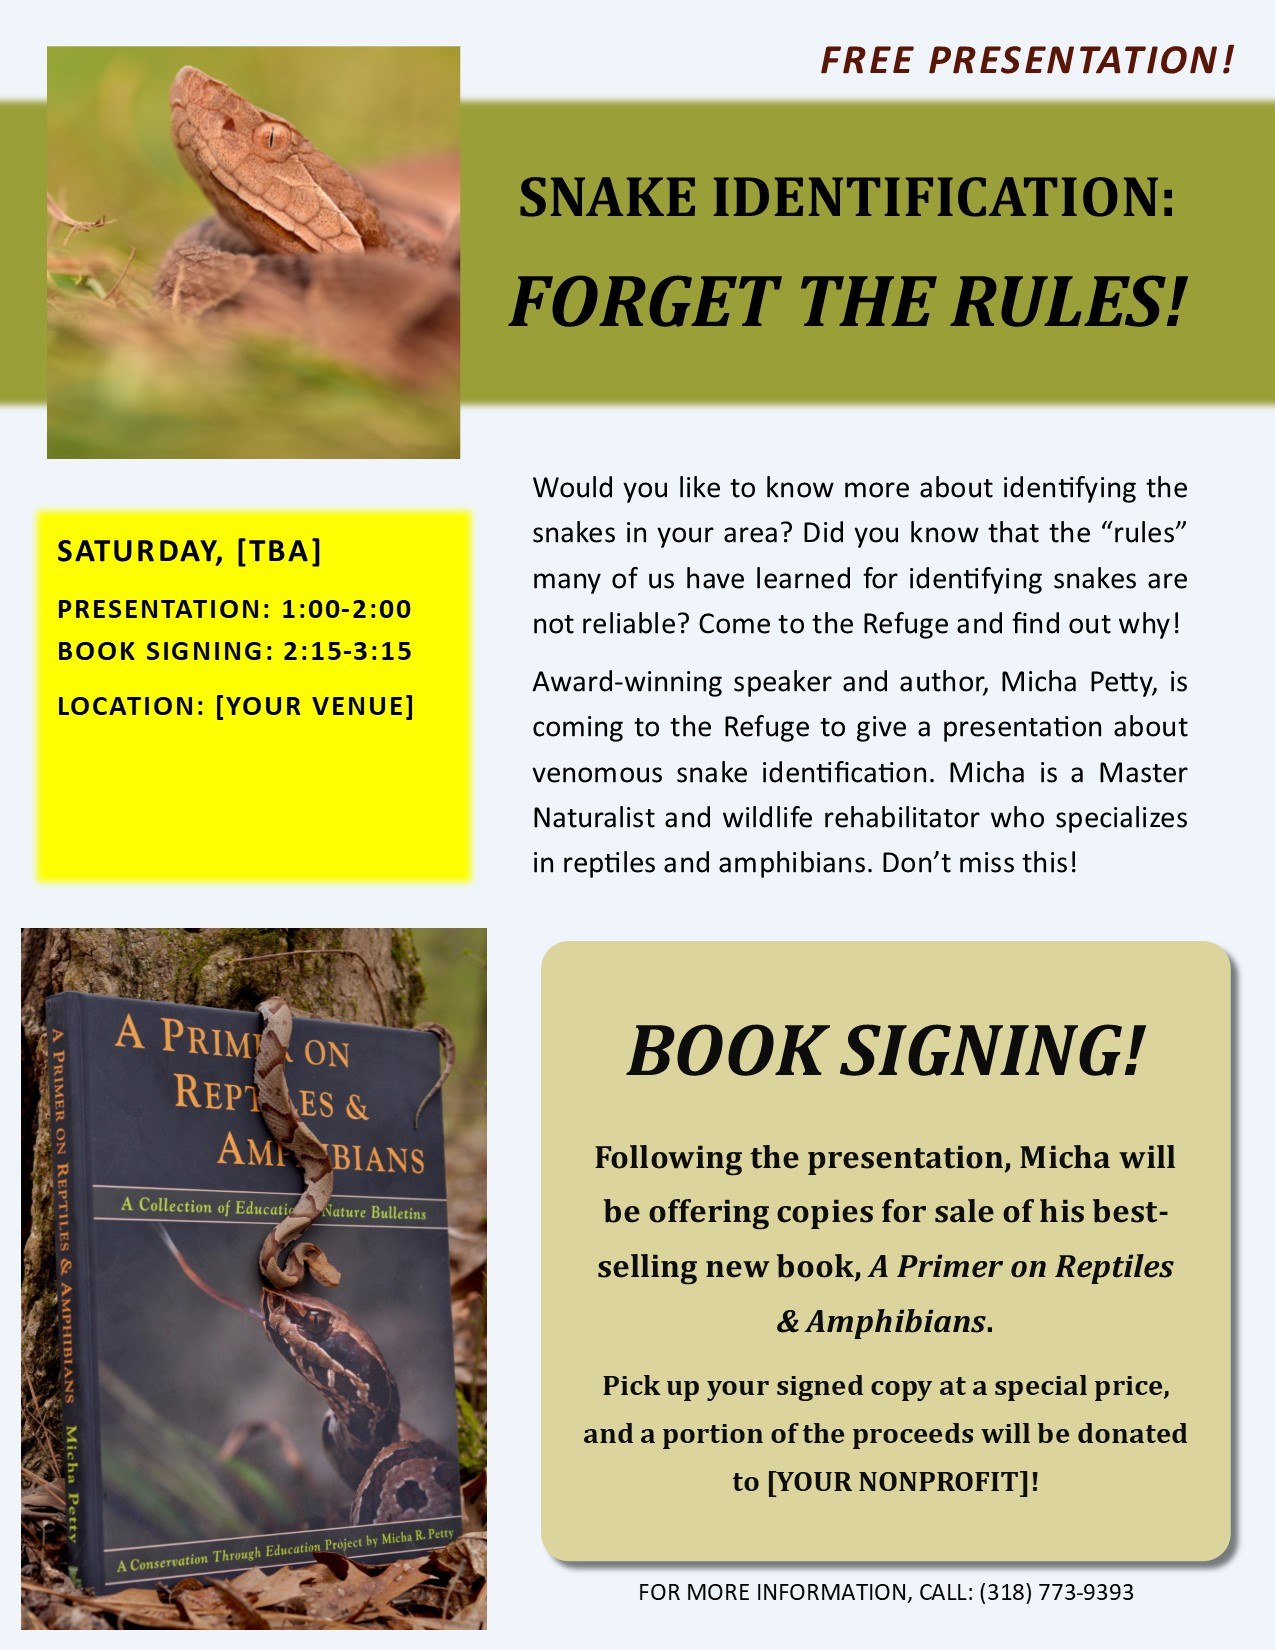 Presentation and Book Signing Sample Flyer